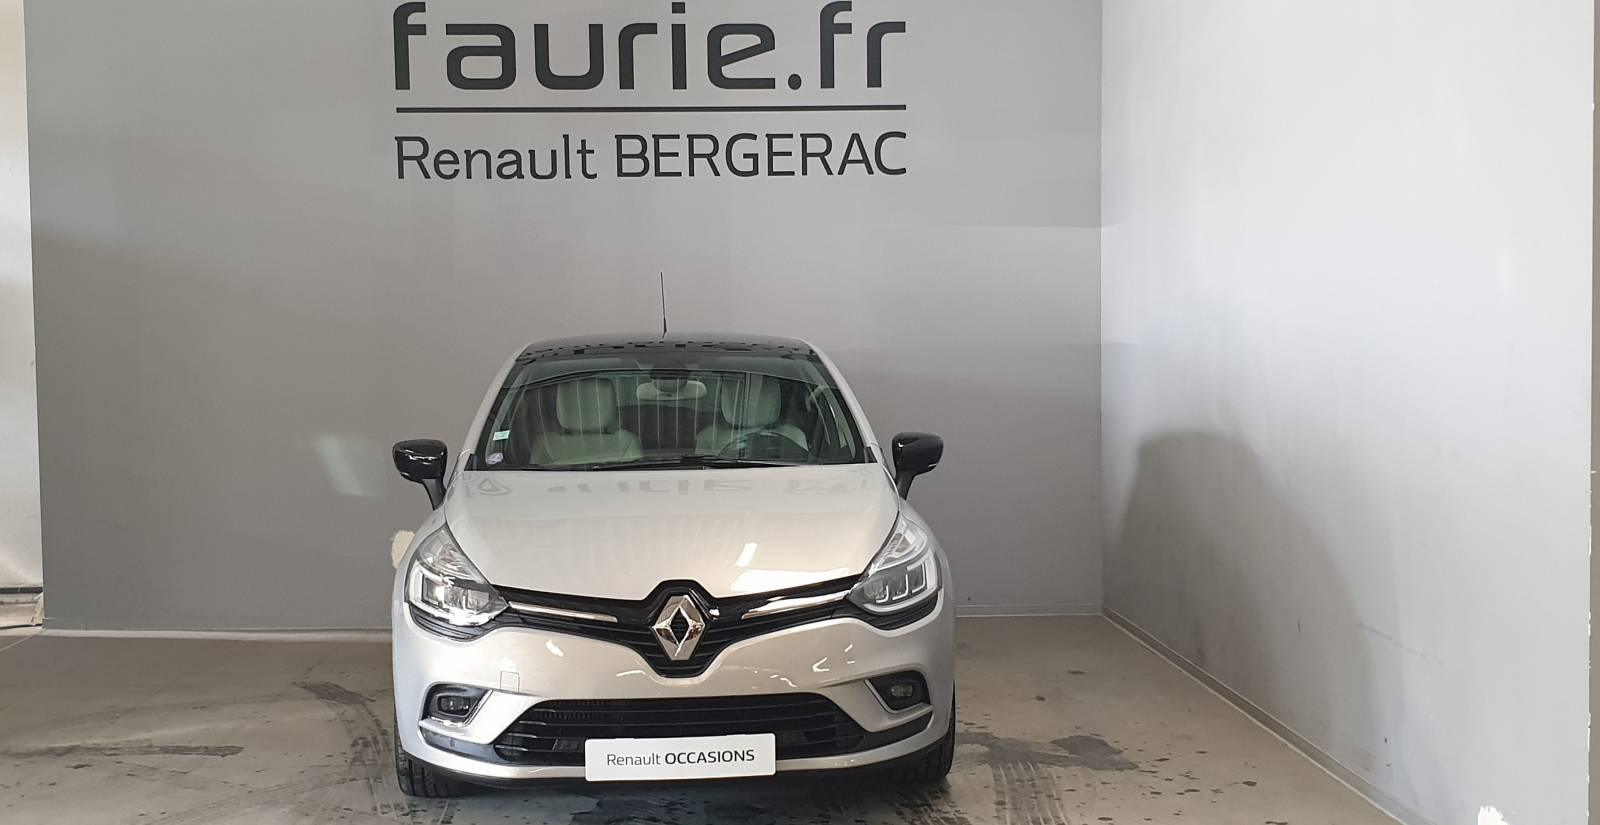 RENAULT Clio IV TCe 120 Energy - véhicule d'occasion - Site Internet Faurie - Renault - Faurie Auto Bergerac - 24100 - Bergerac - 2